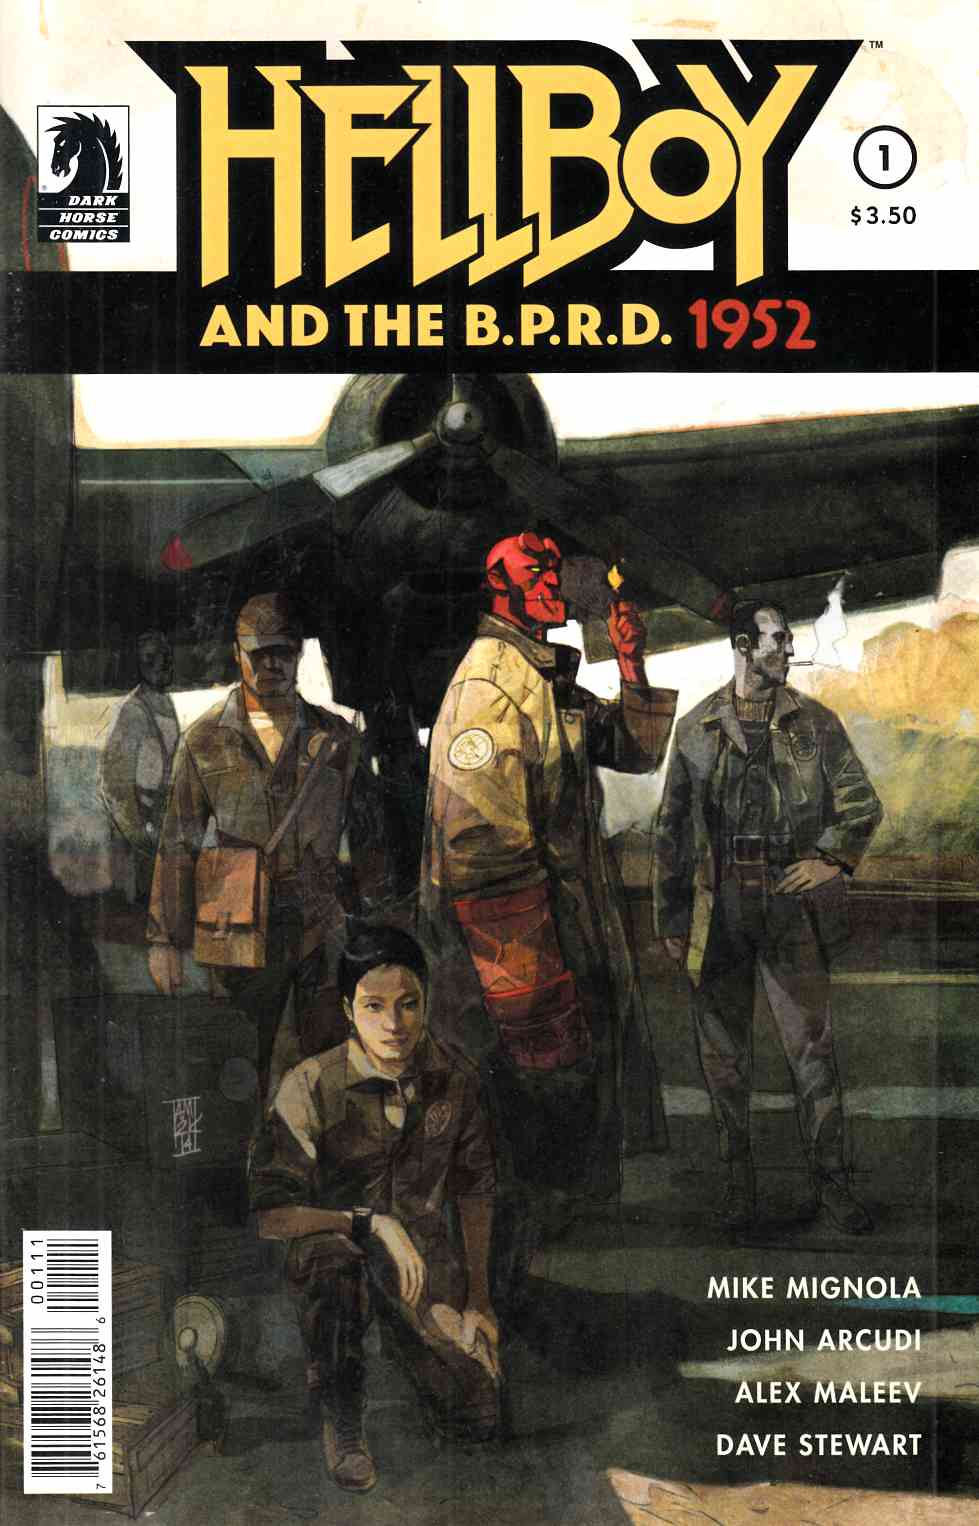 Hellboy and The BPRD #1 1952 [Dark Horse Comic]